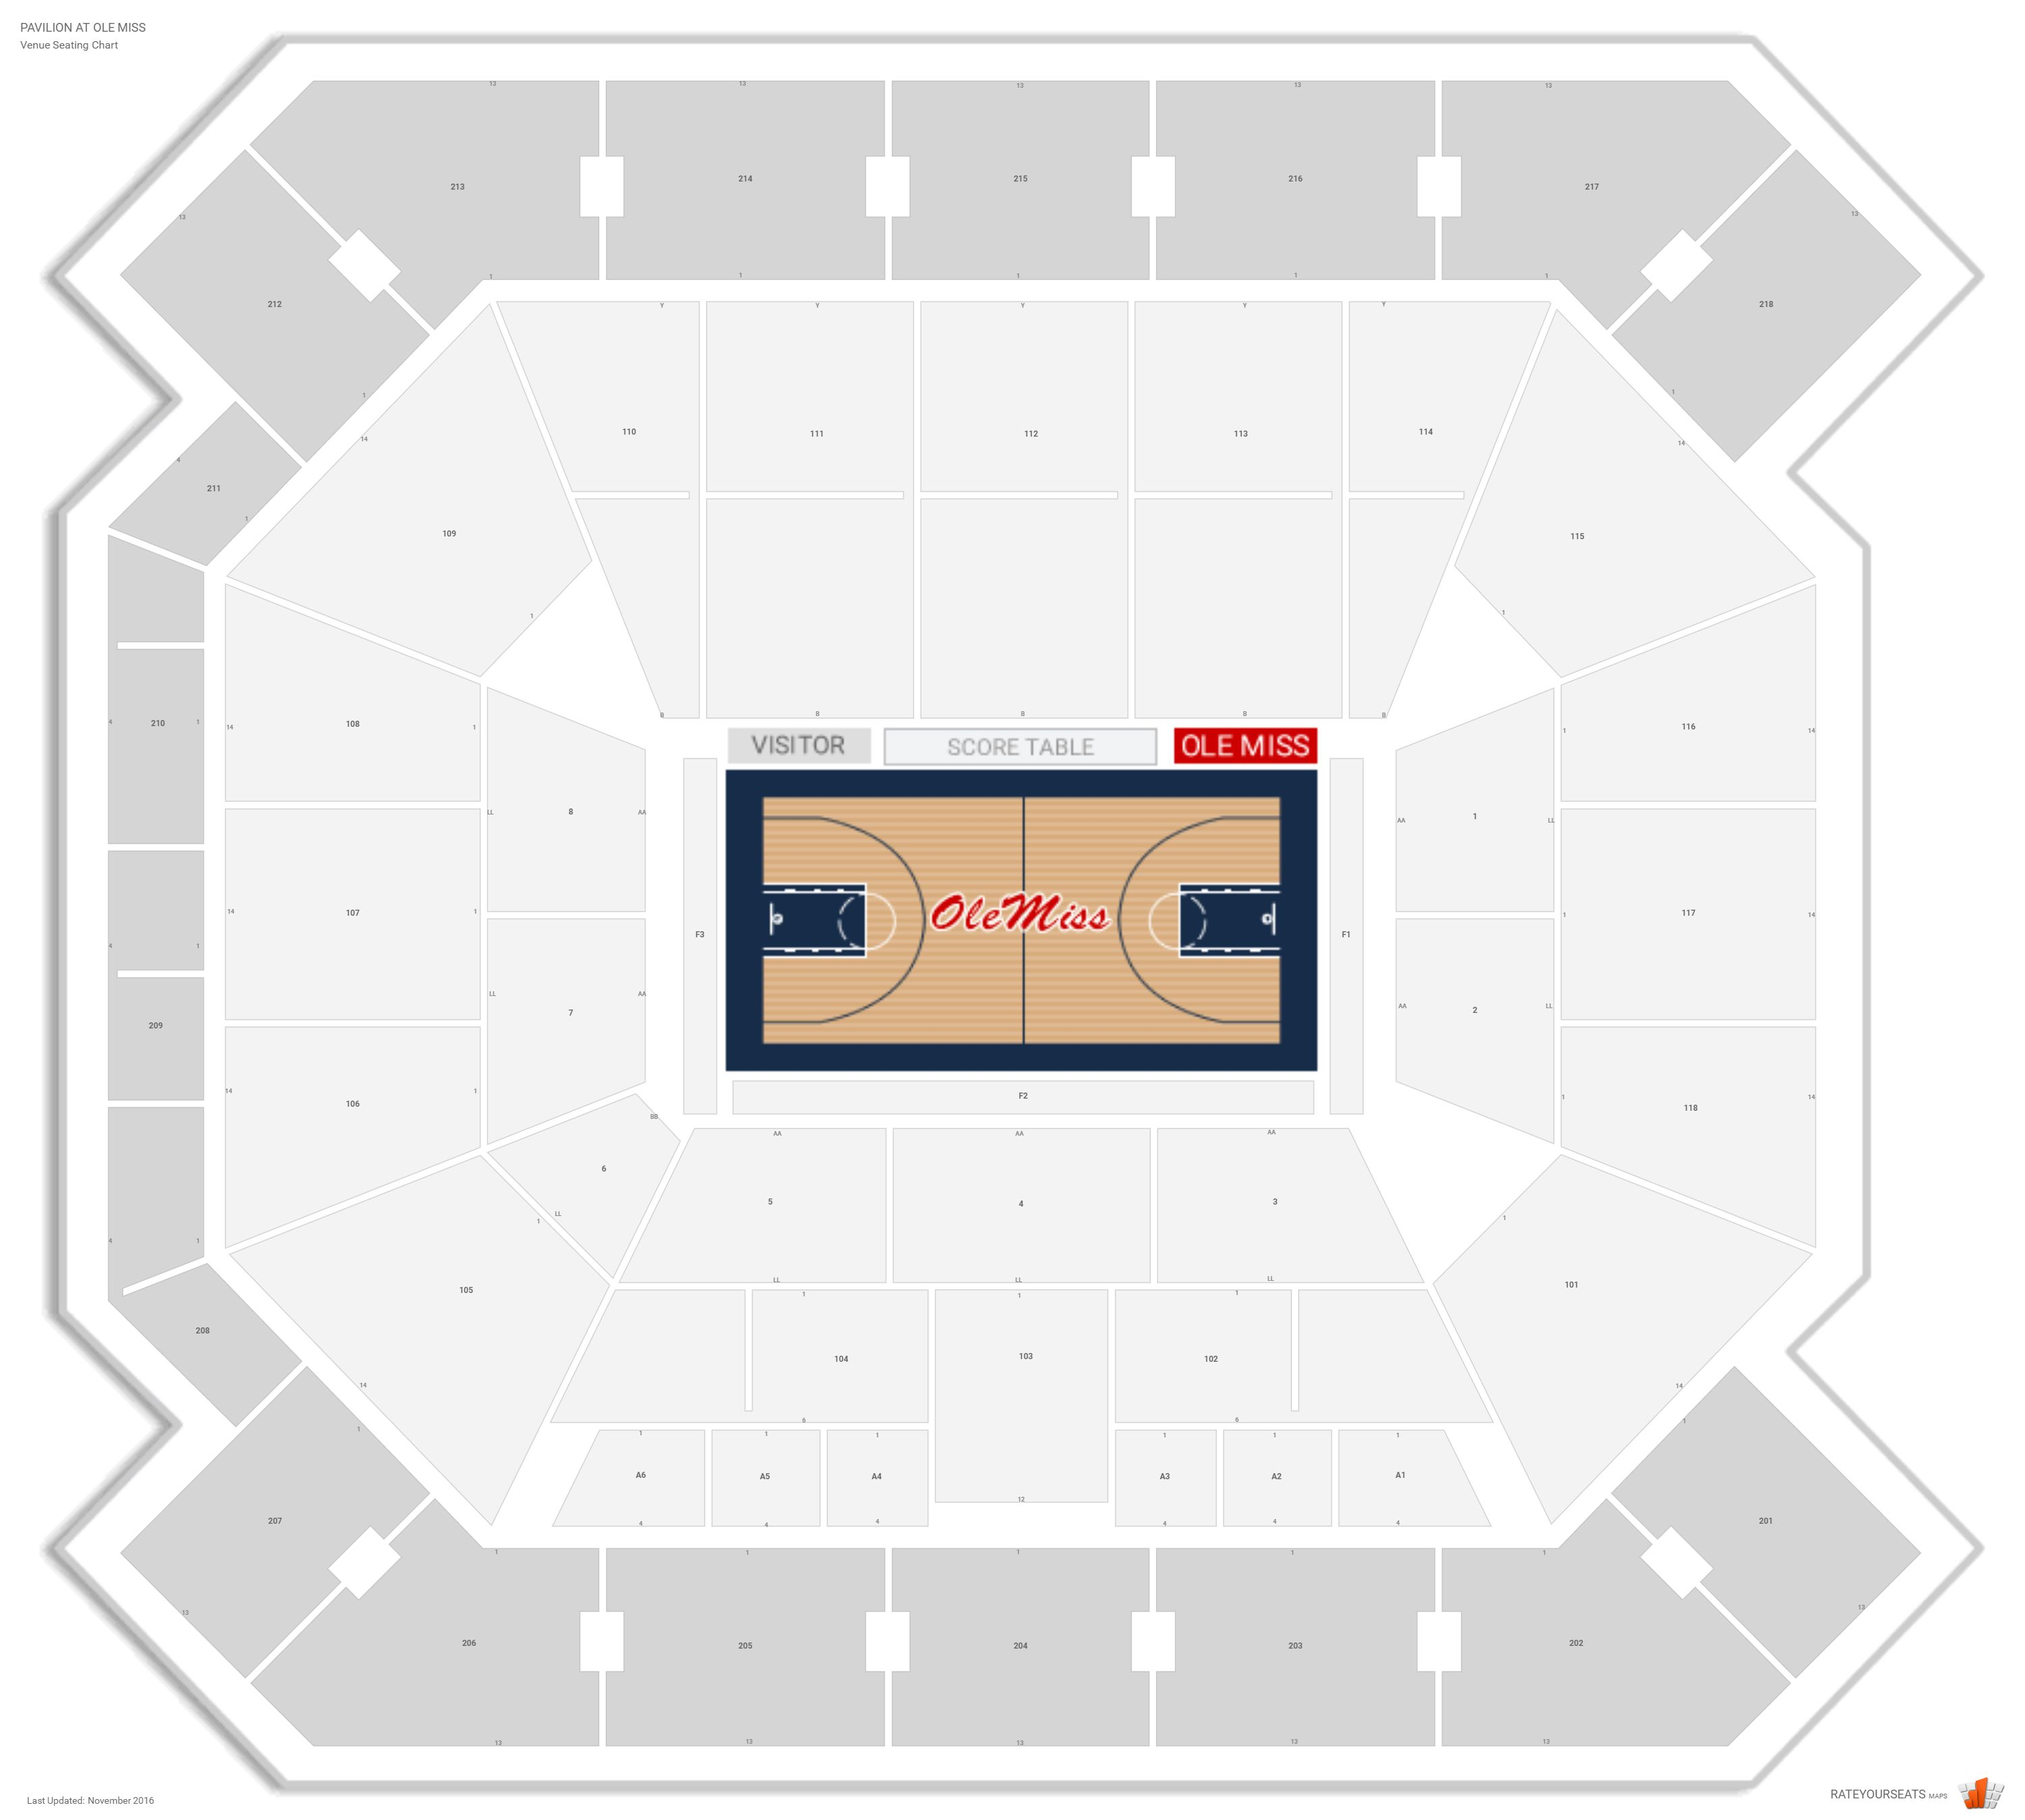 Pavilion at ole miss ole miss seating guide rateyourseats com